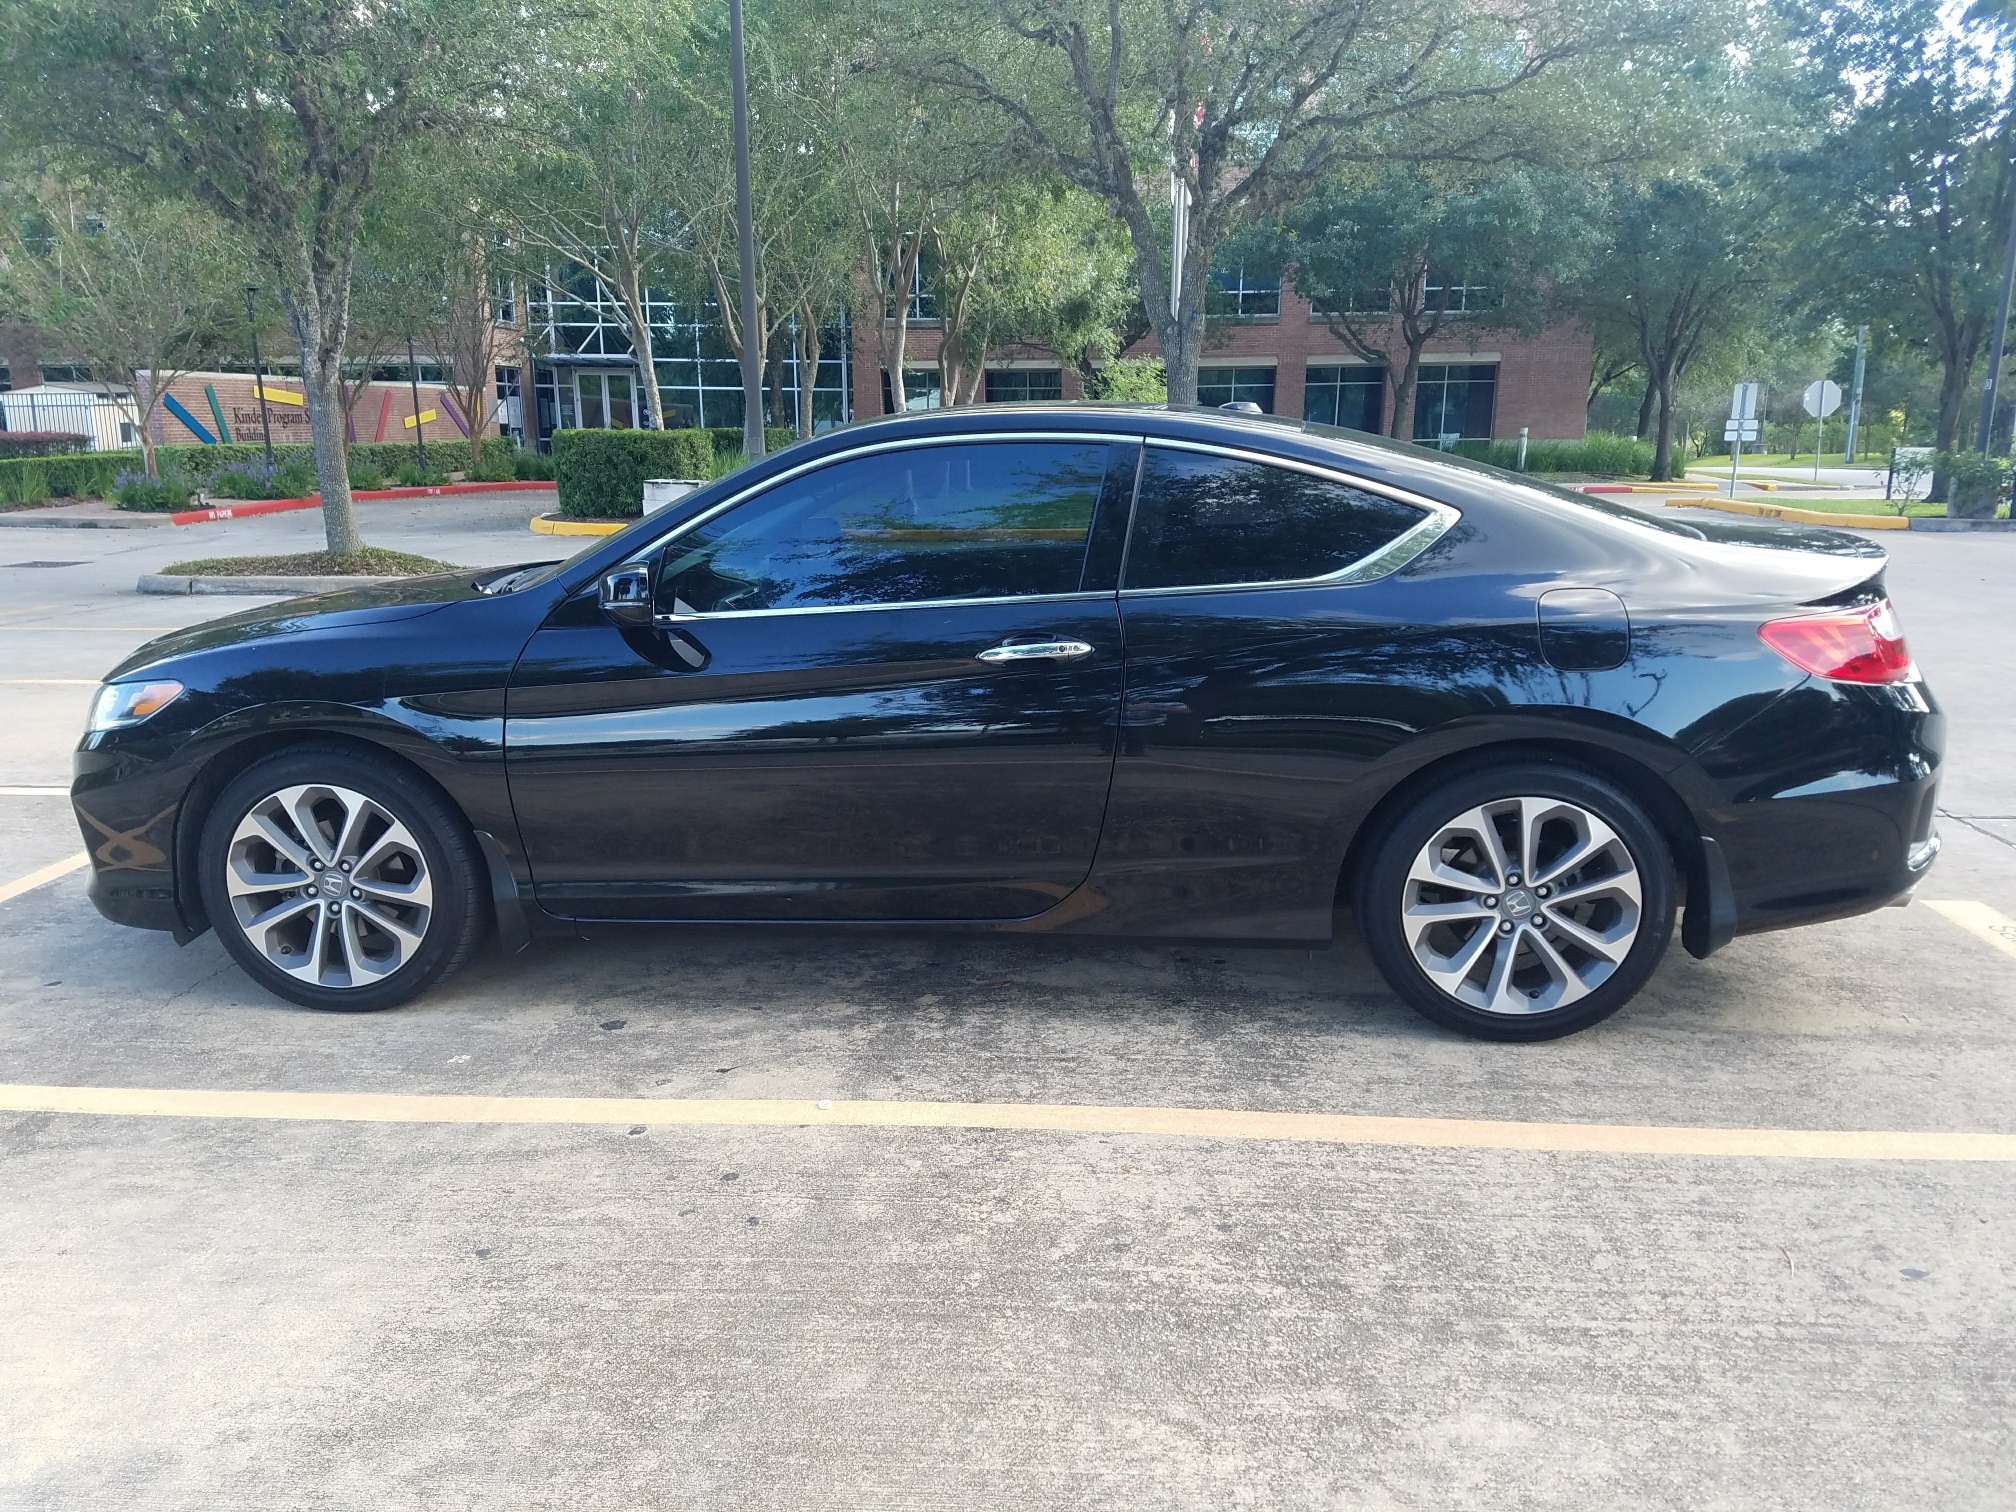 honda_accord_coupe_v6_2014_black (7)